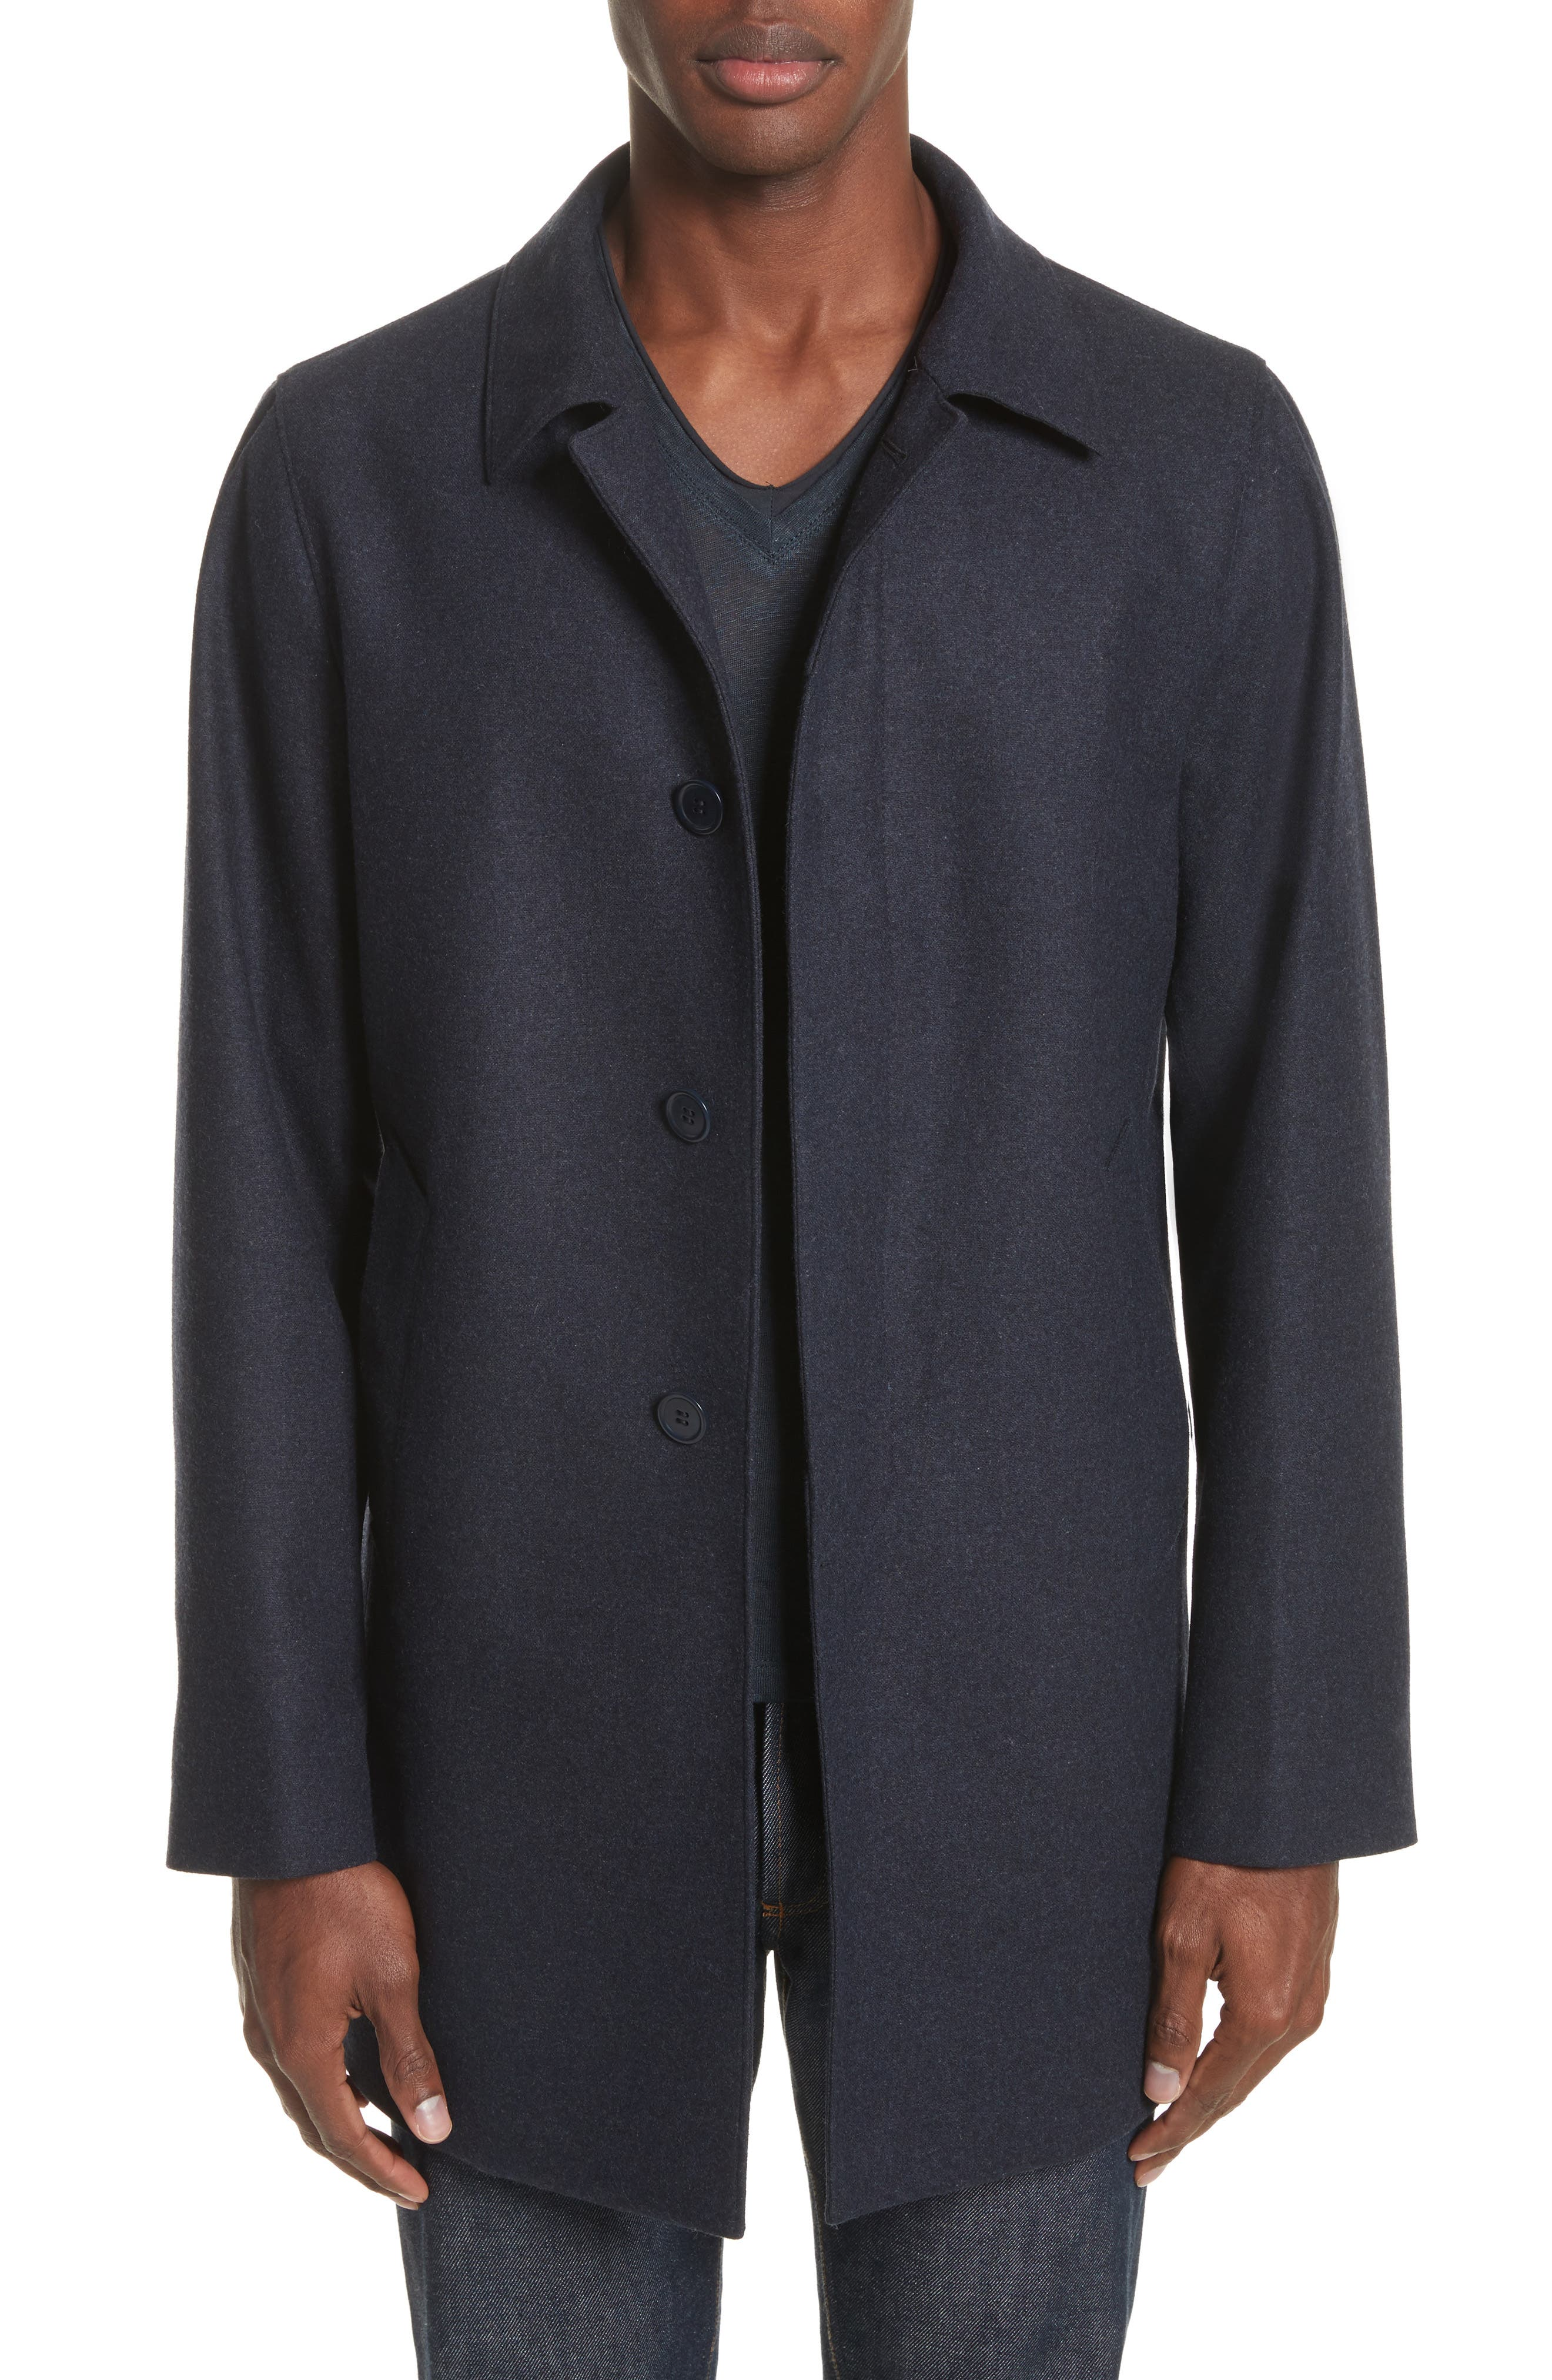 Buckley Wool Blend Topcoat,                         Main,                         color,